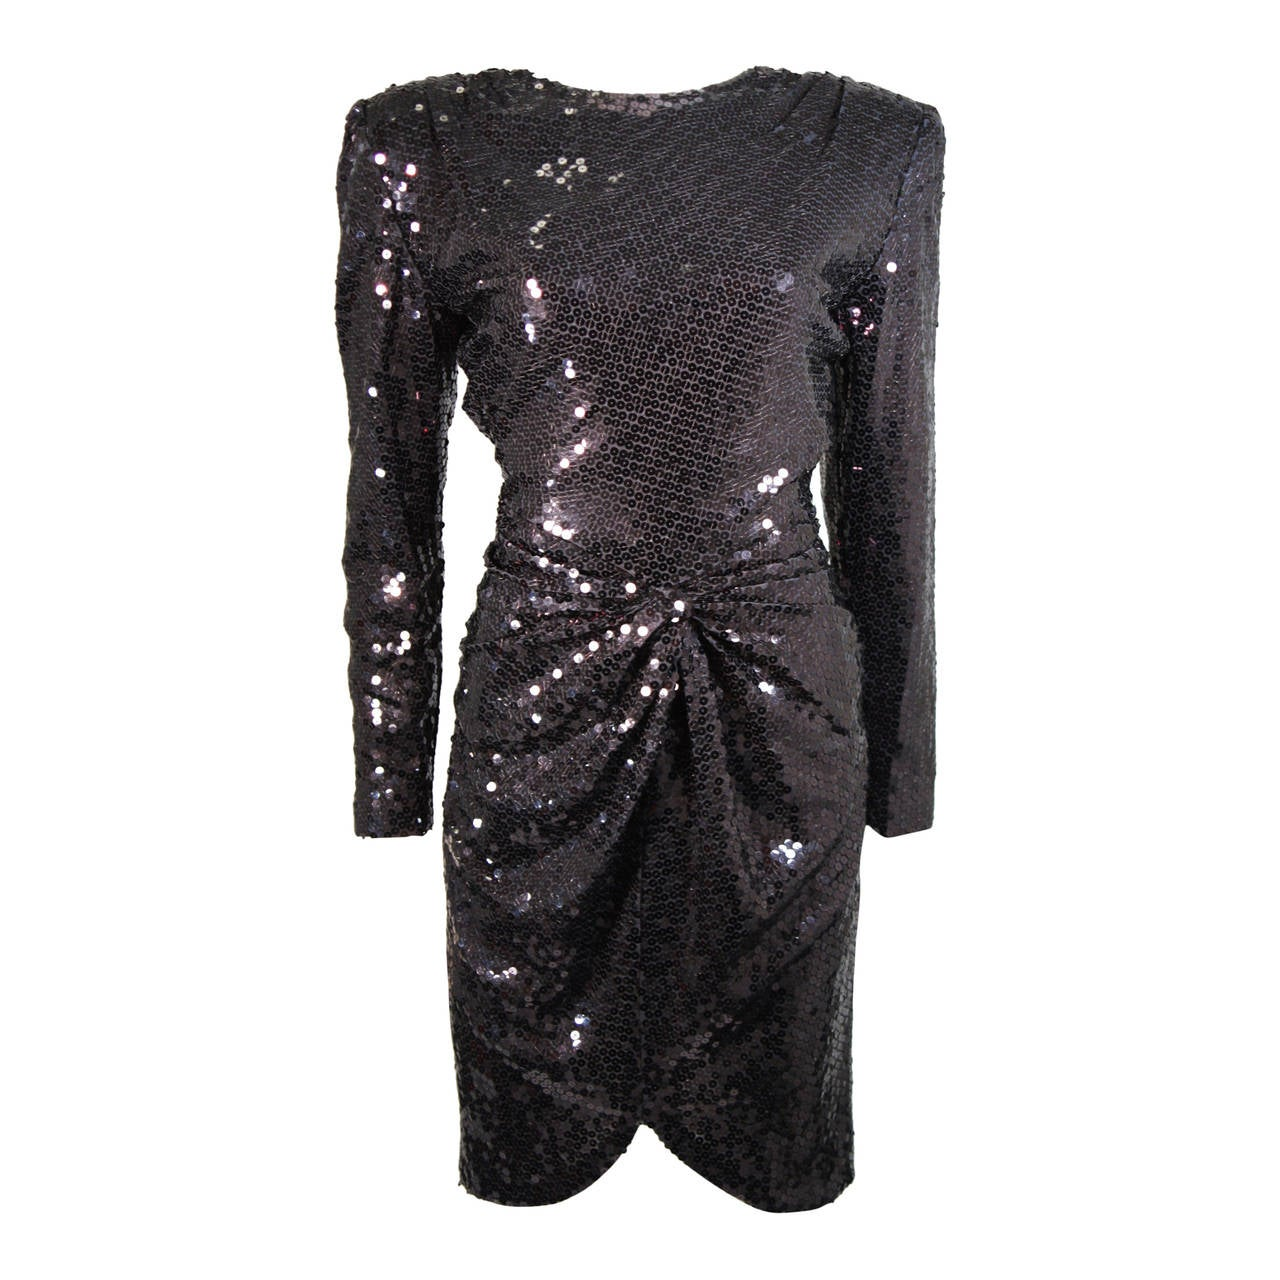 Vicky Tiel Black Iridescent Sequin Cocktail Dress Size 38 1